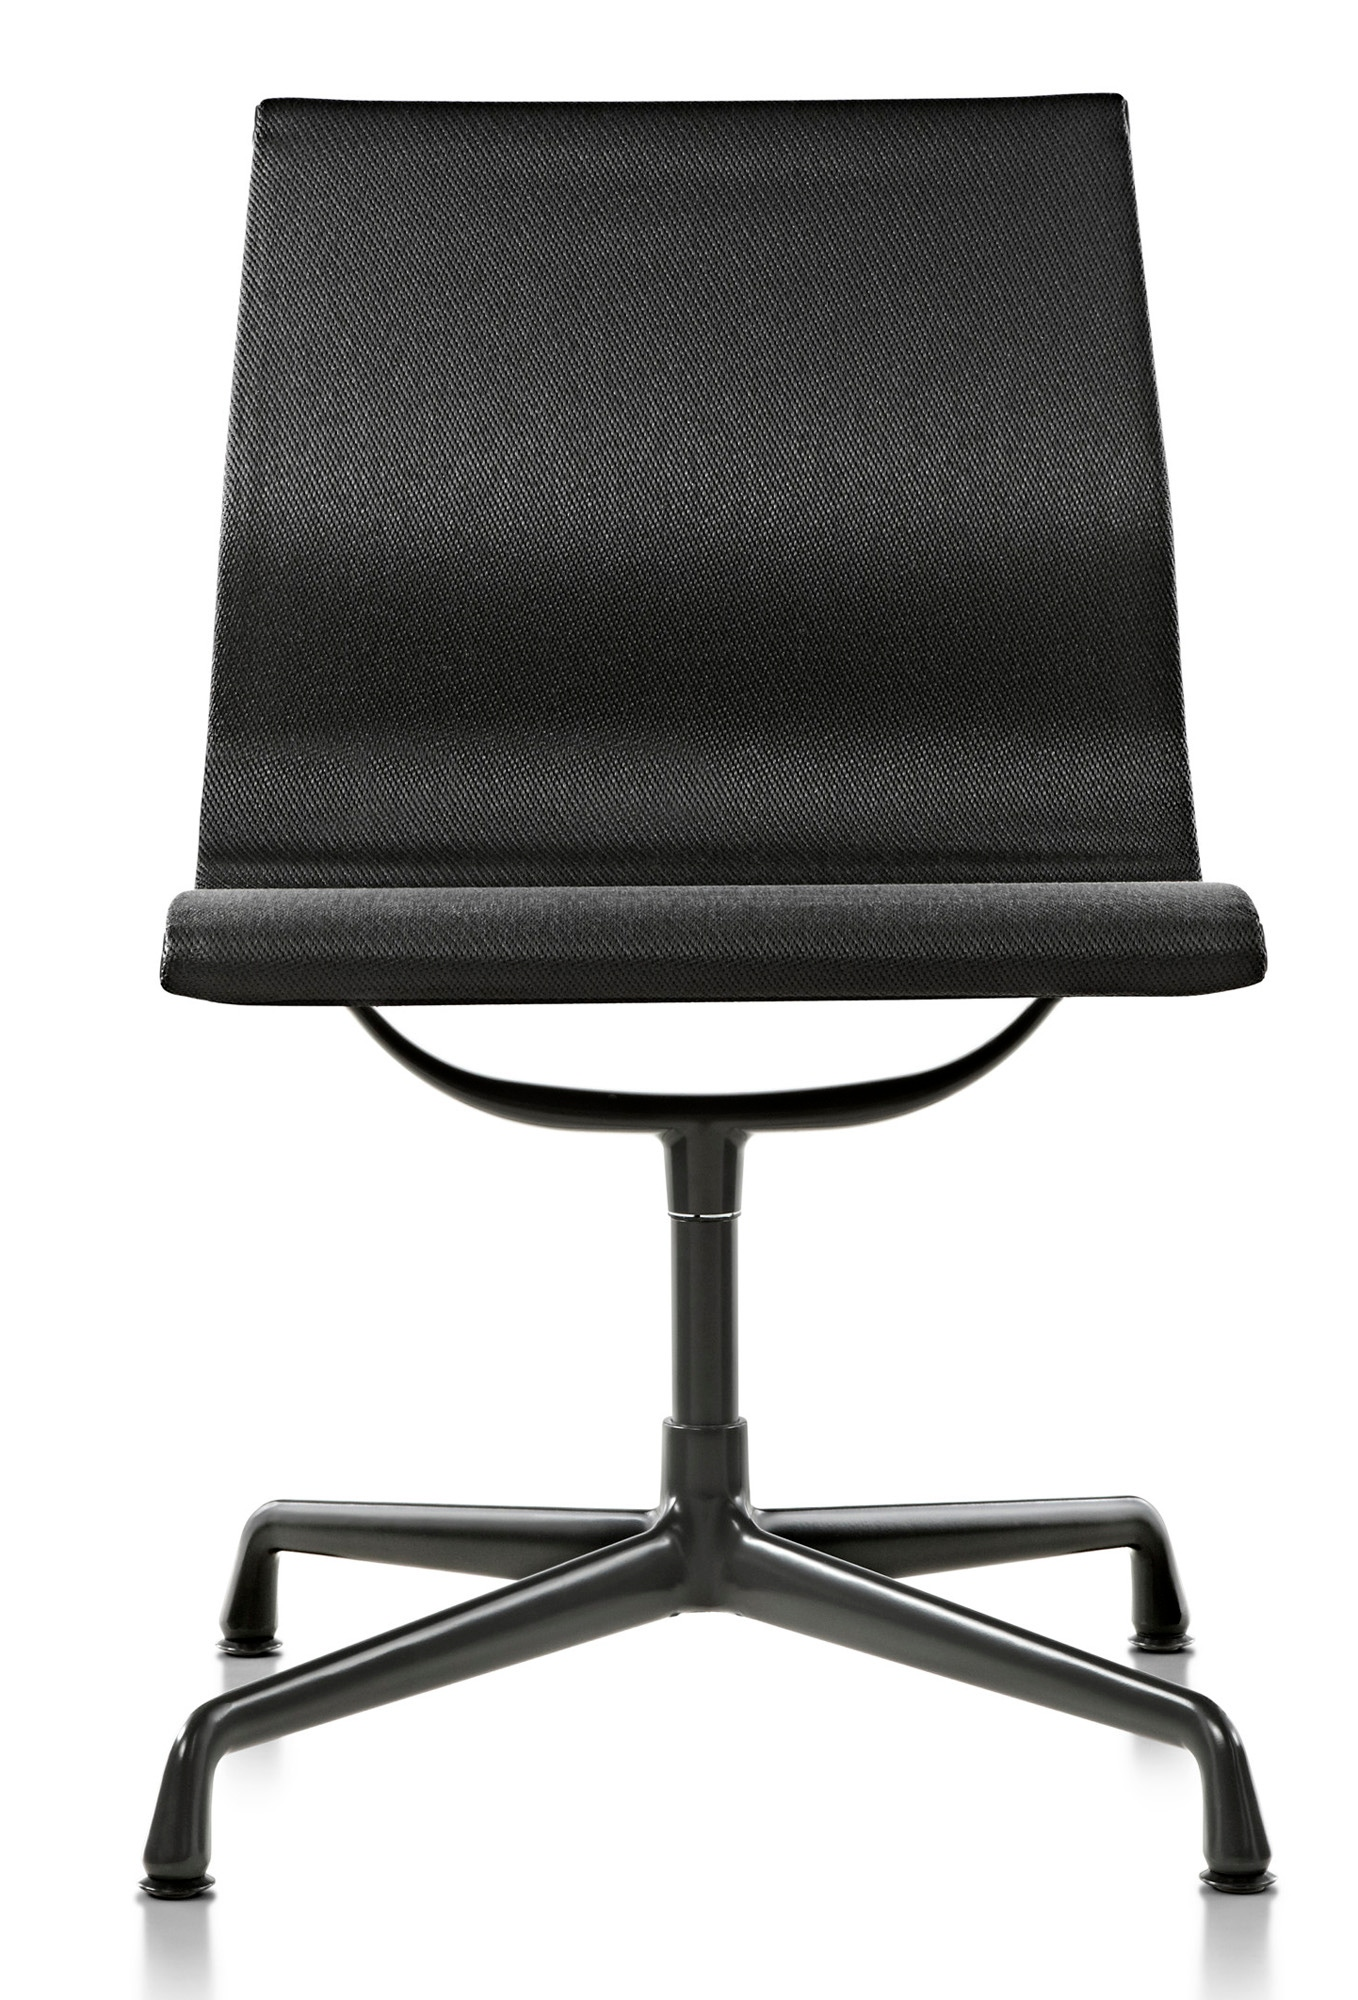 Eames office chair no arms - Herman Miller Eames 174 Aluminum Group Side Chair Outdoor